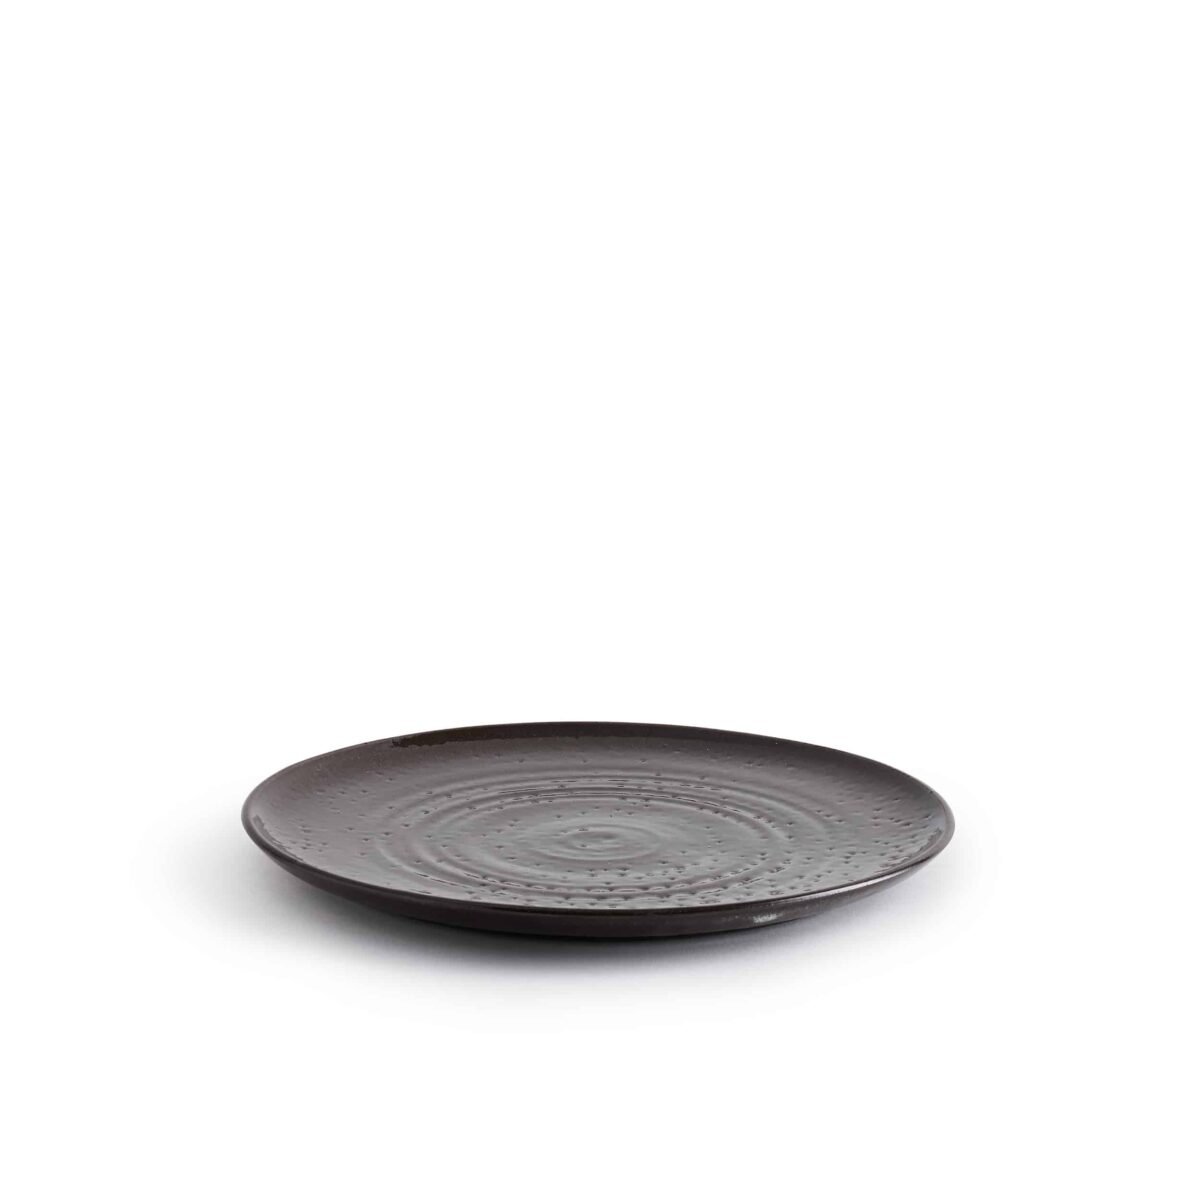 Marland Side Plate Gloss Black – Another Country – Photo Credit Yeshen Venema – web ready -21.11.185266